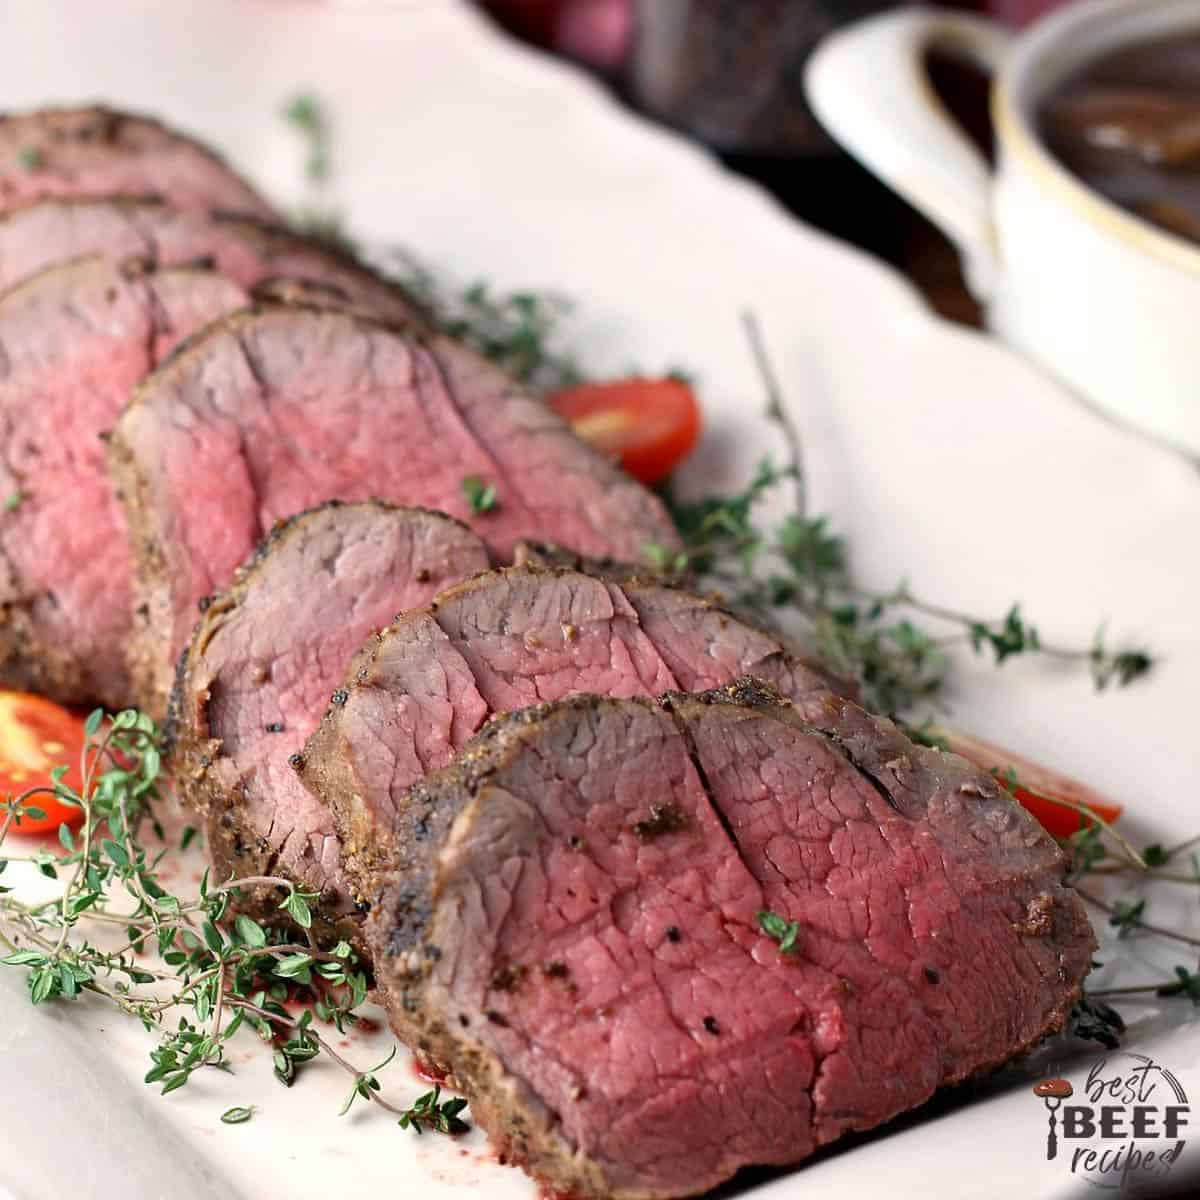 Slices of whole beef tenderloin on a white platter